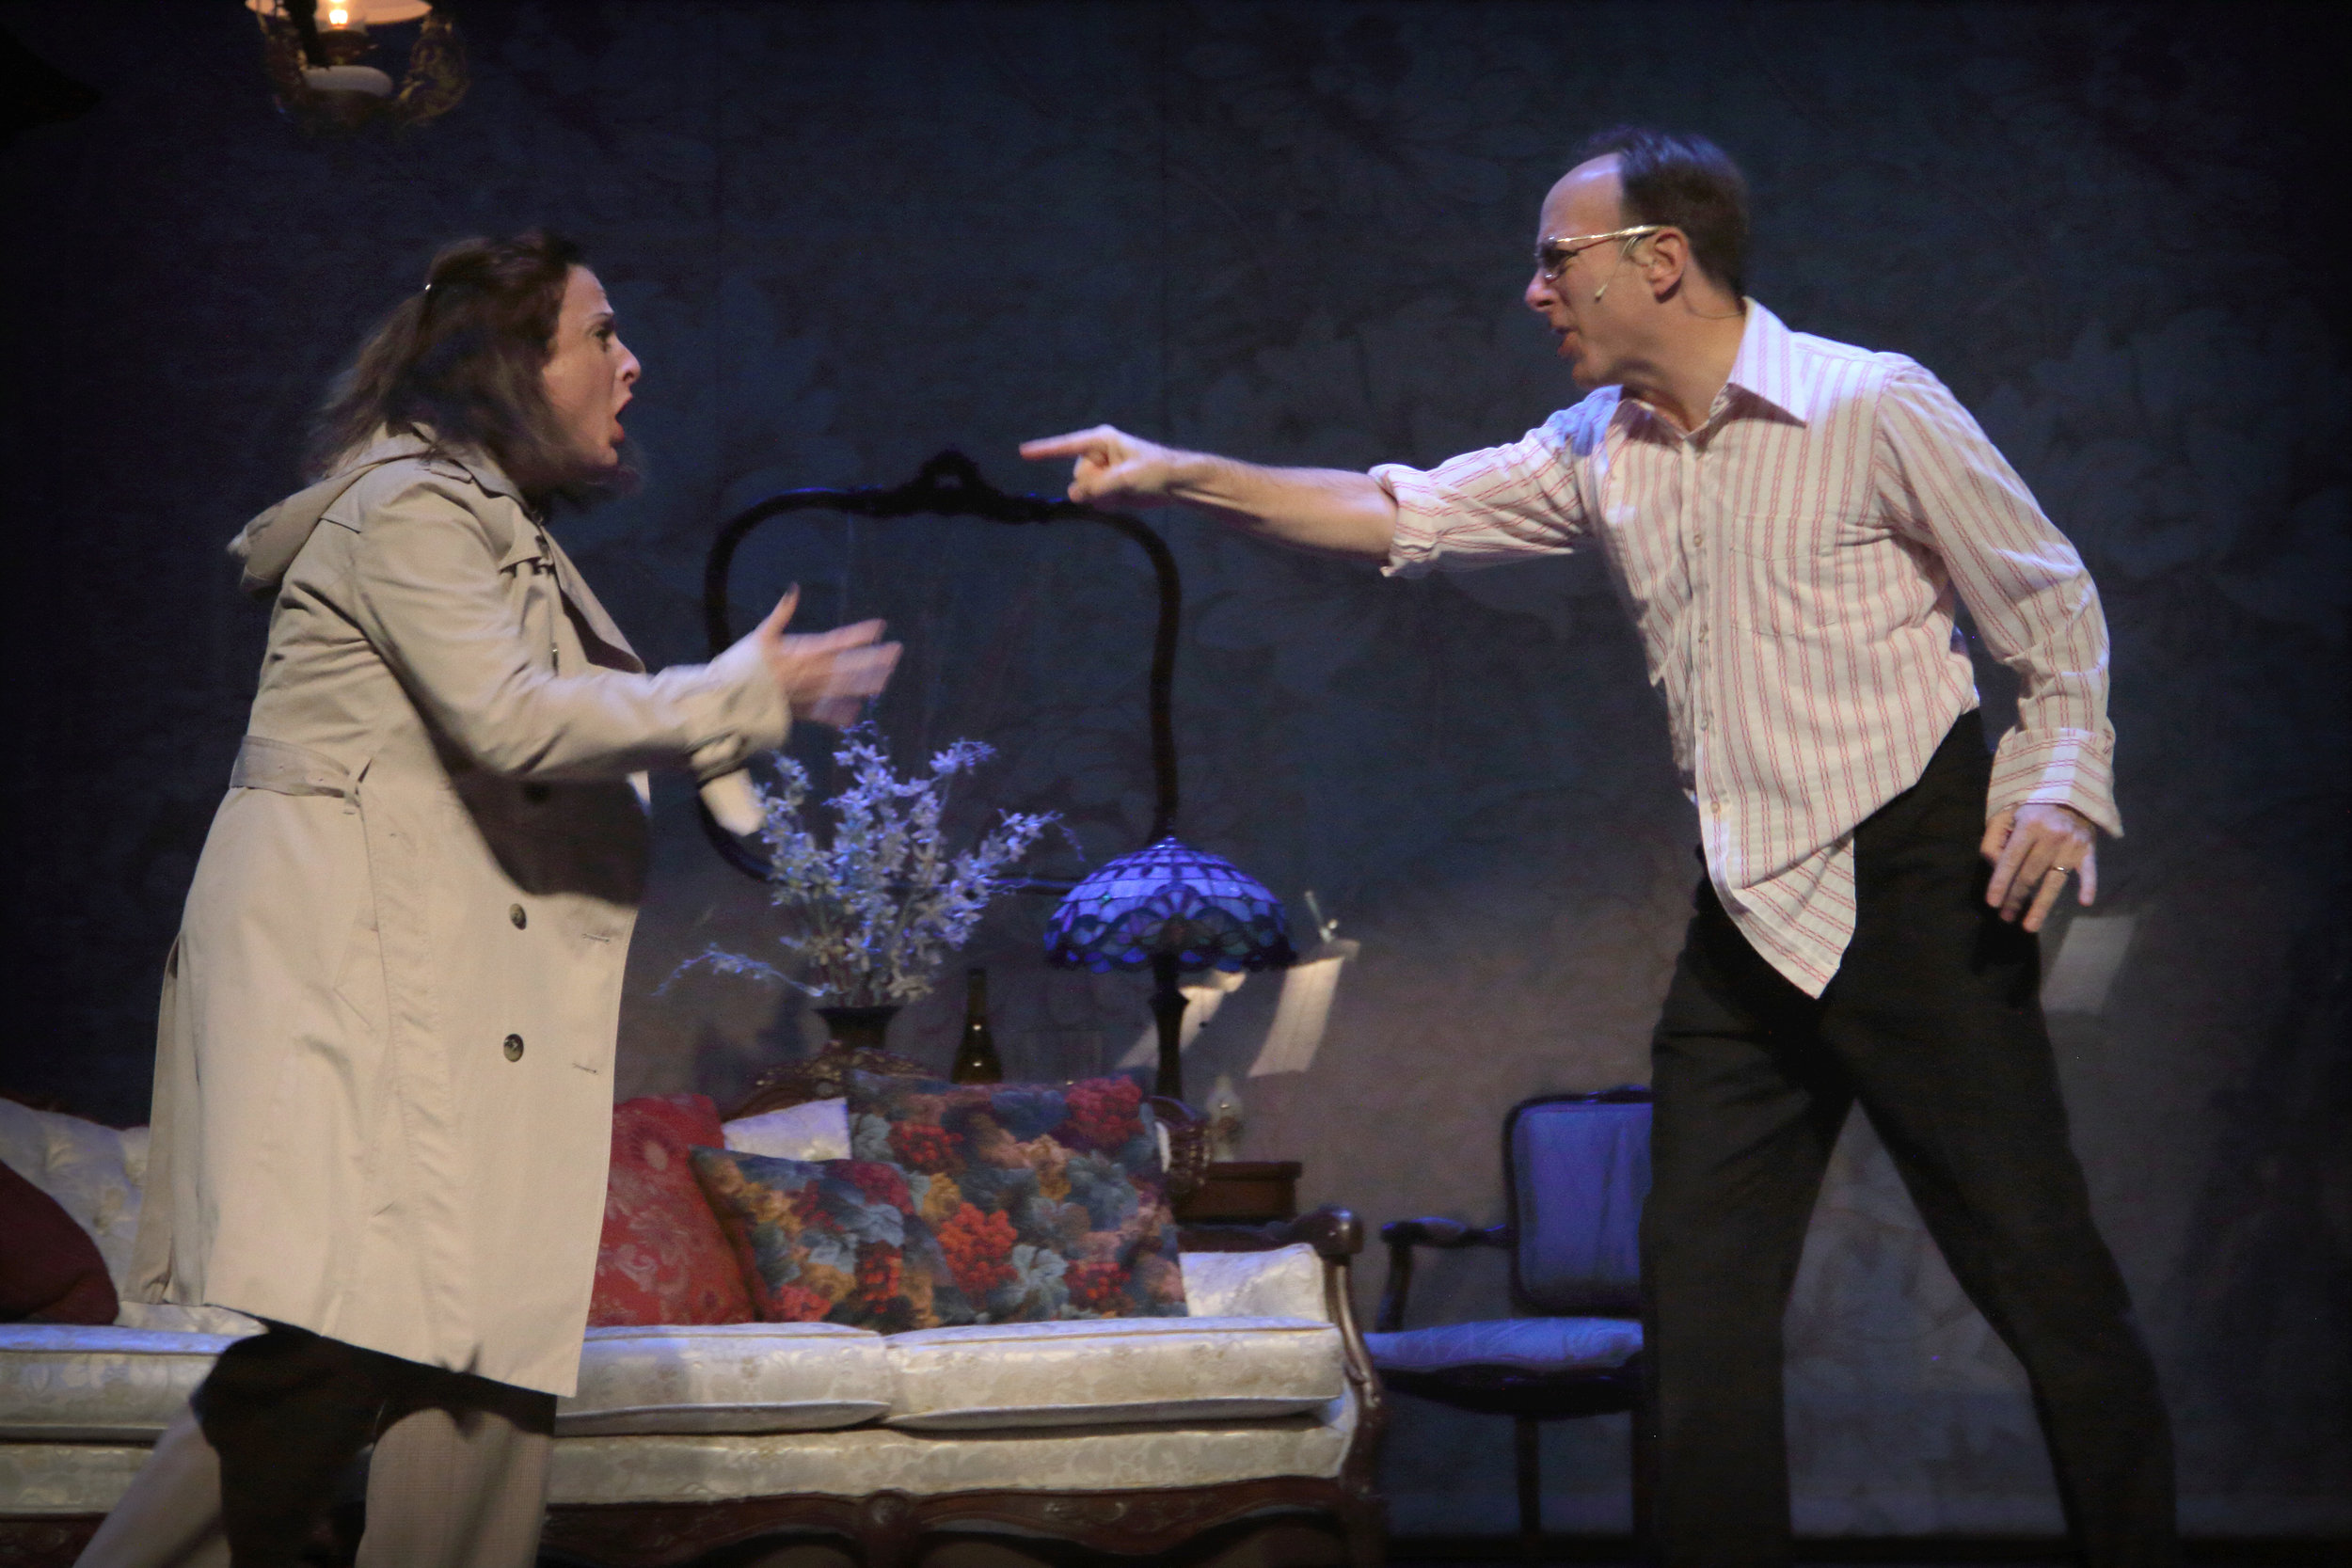 FunHome closeups 149_edit.jpg